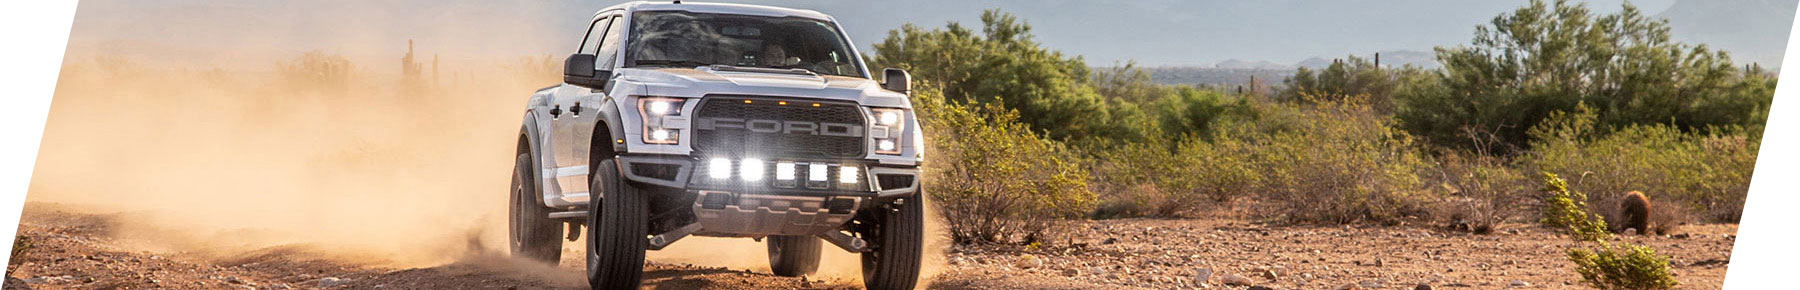 2017 Ford Raptor Performance Parts & Accessories